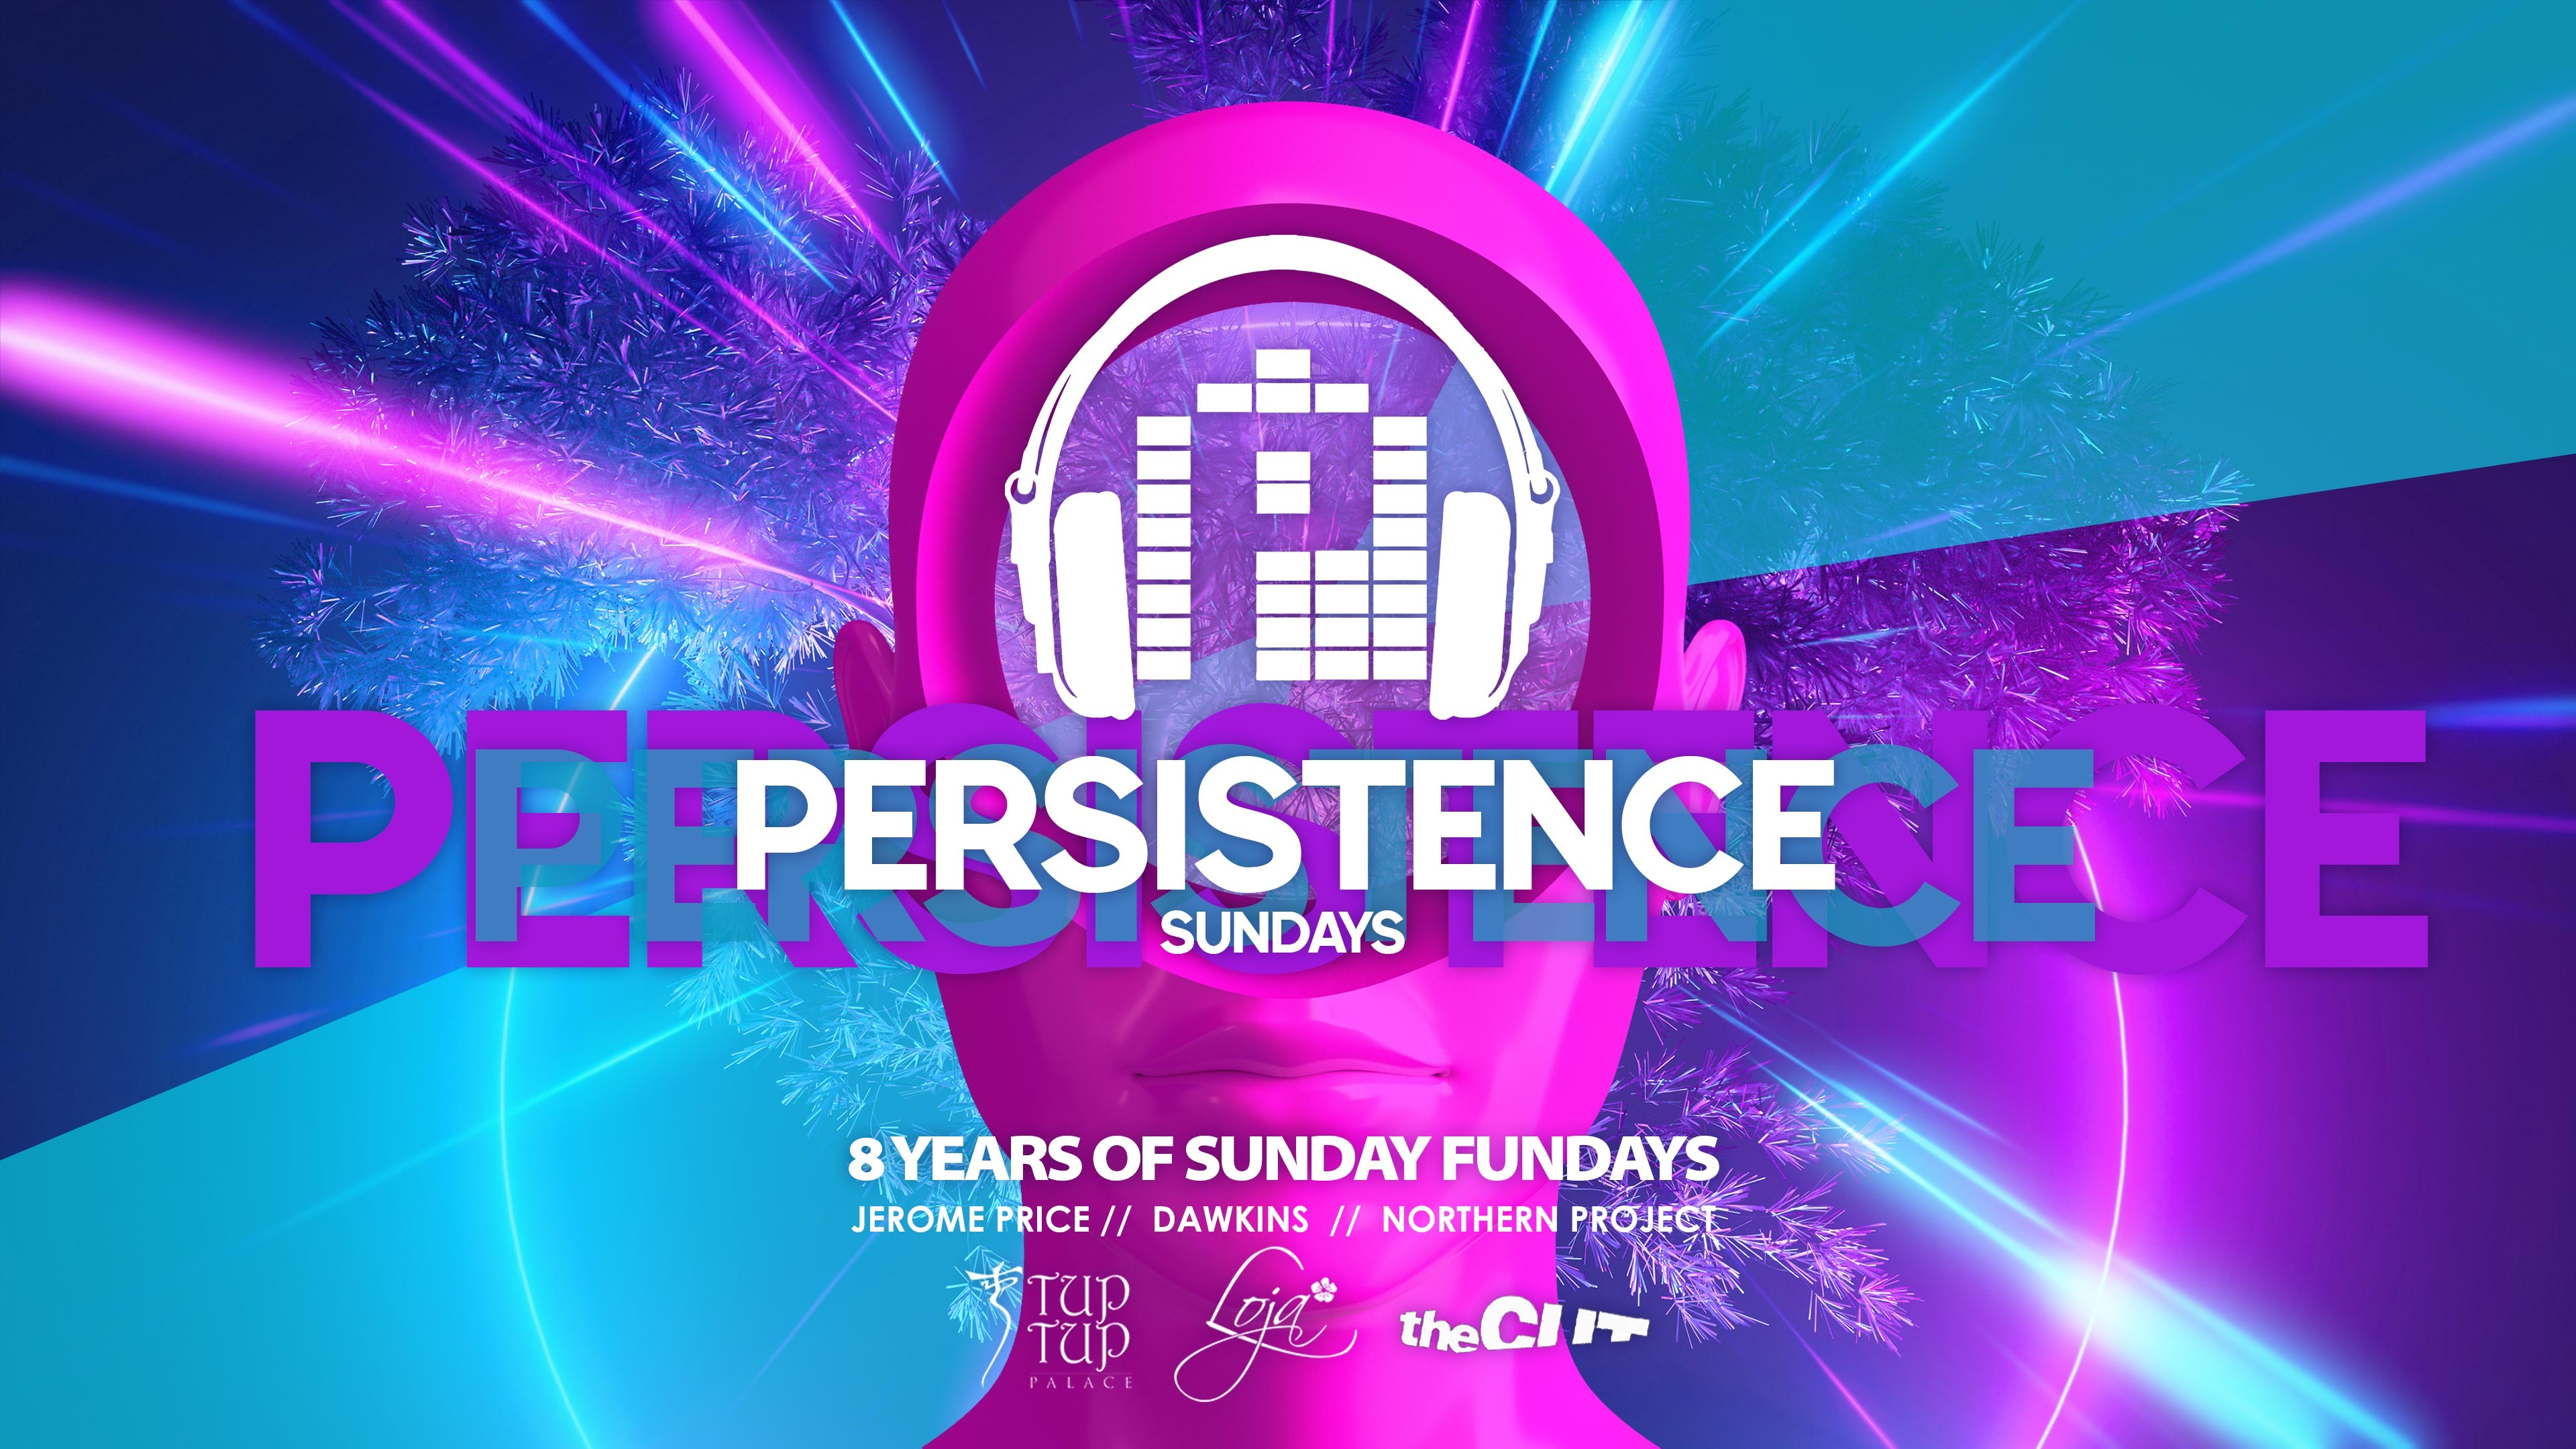 PERSISTENCE   TUP TUP PALACE, THE CUT & LOJA   1st AUGUST *NEW DATE*